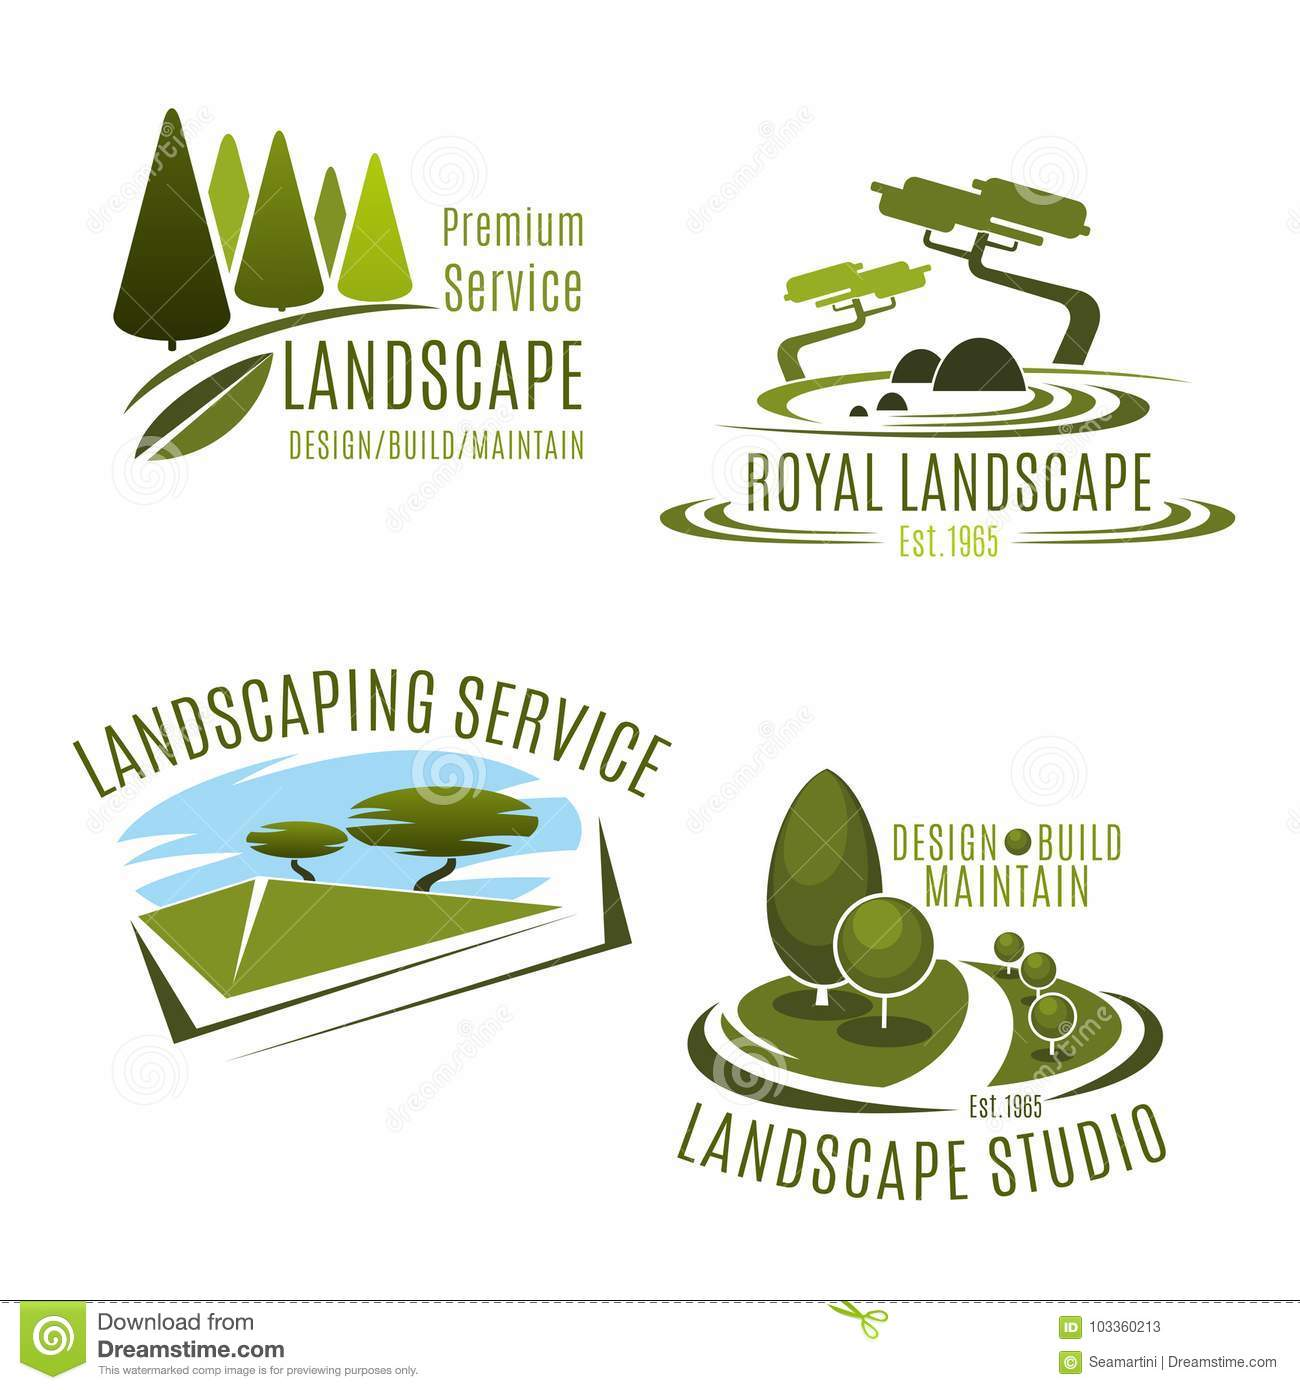 Download Vector Icons Gardening Landscape Design Company Stock Vector    Illustration Of Horticulture, Icon: